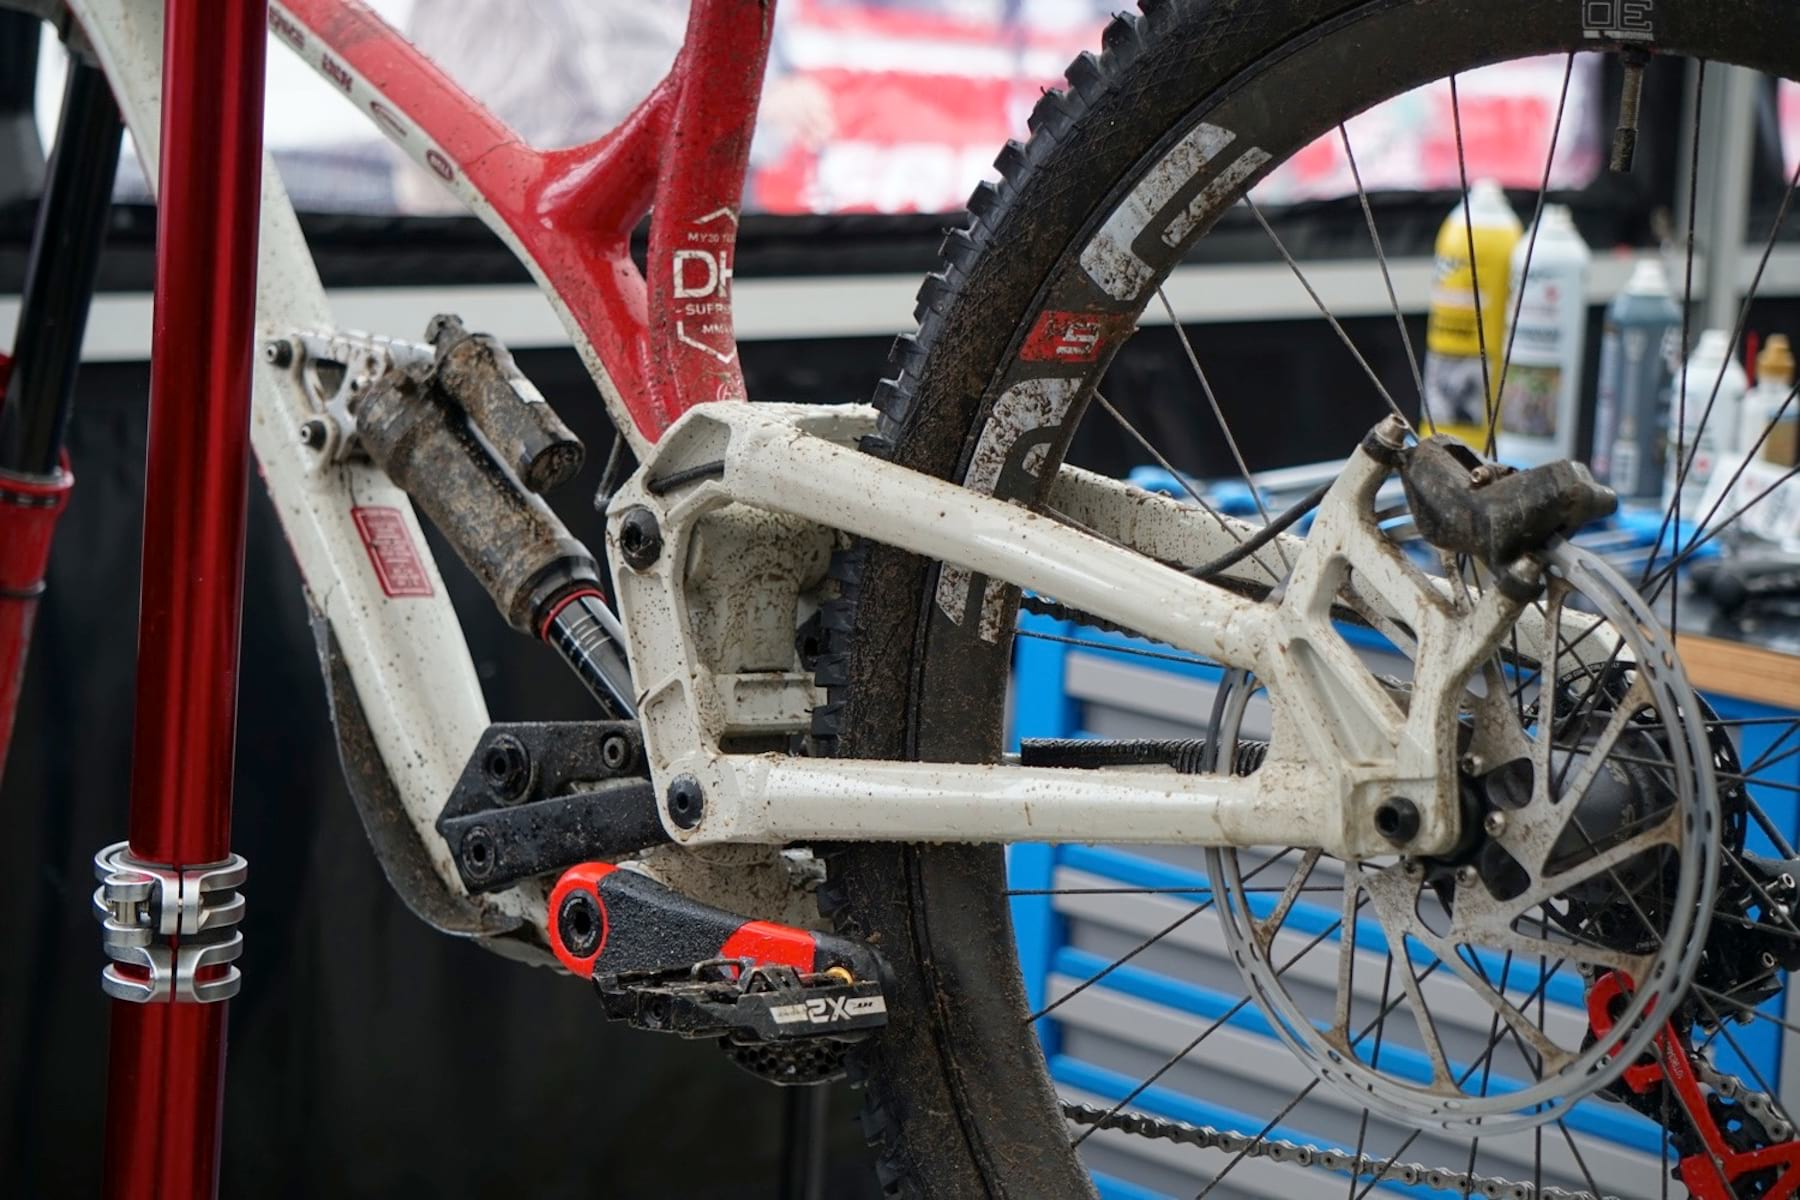 2020 commencal supreme dh bike fort william